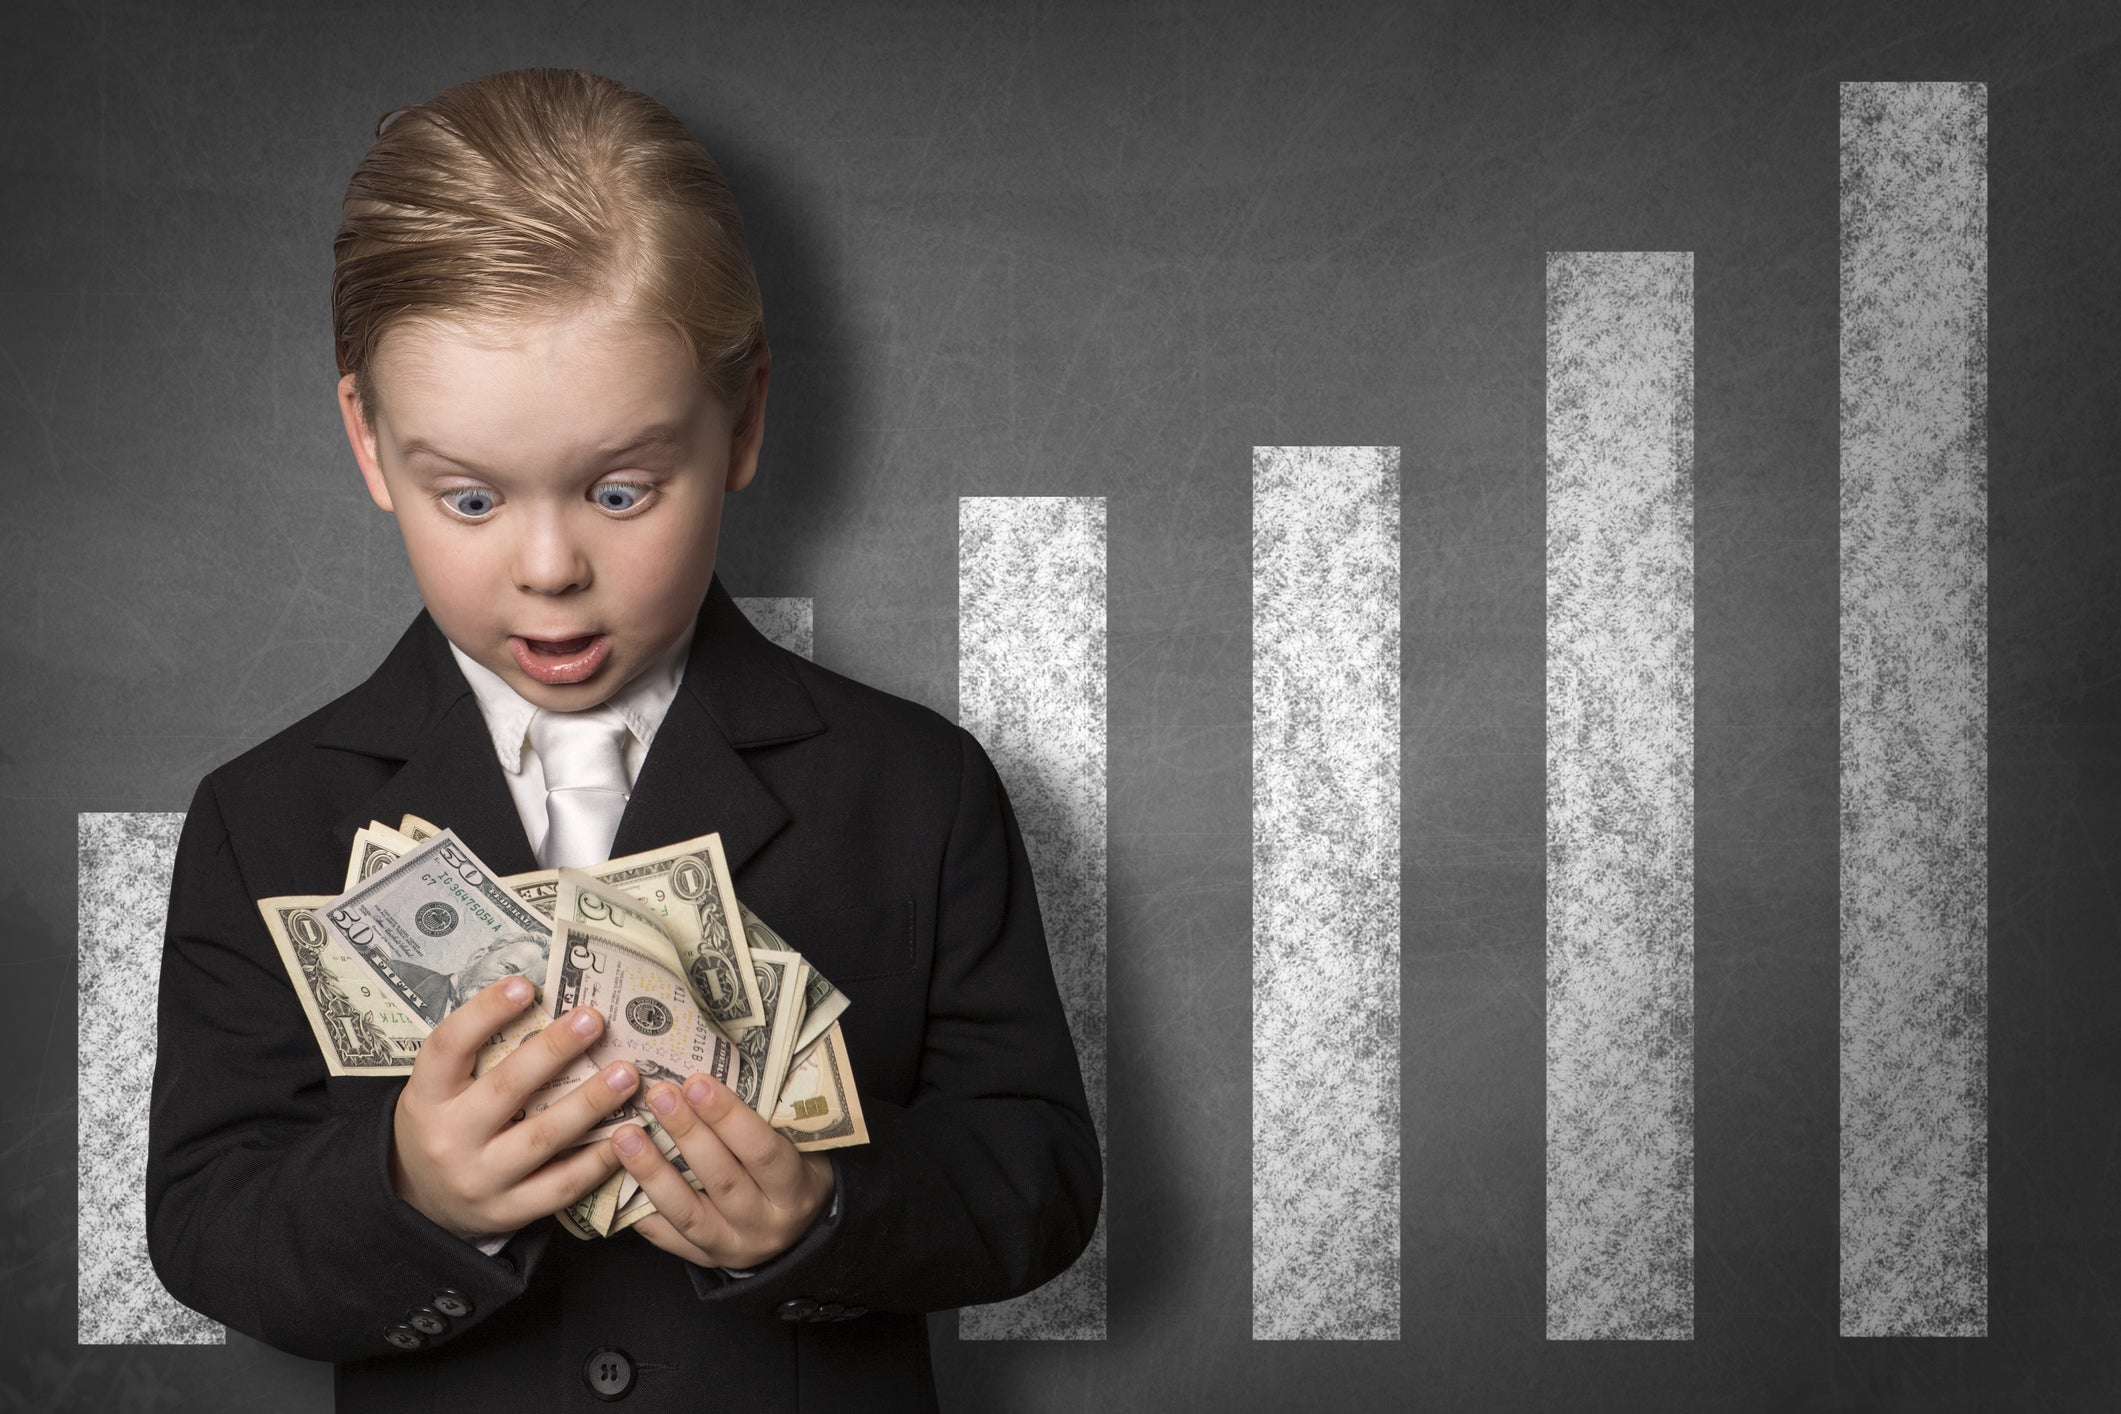 5 Money Lessons I Wish I'd Learned When I Was Younger | The Motley Fool